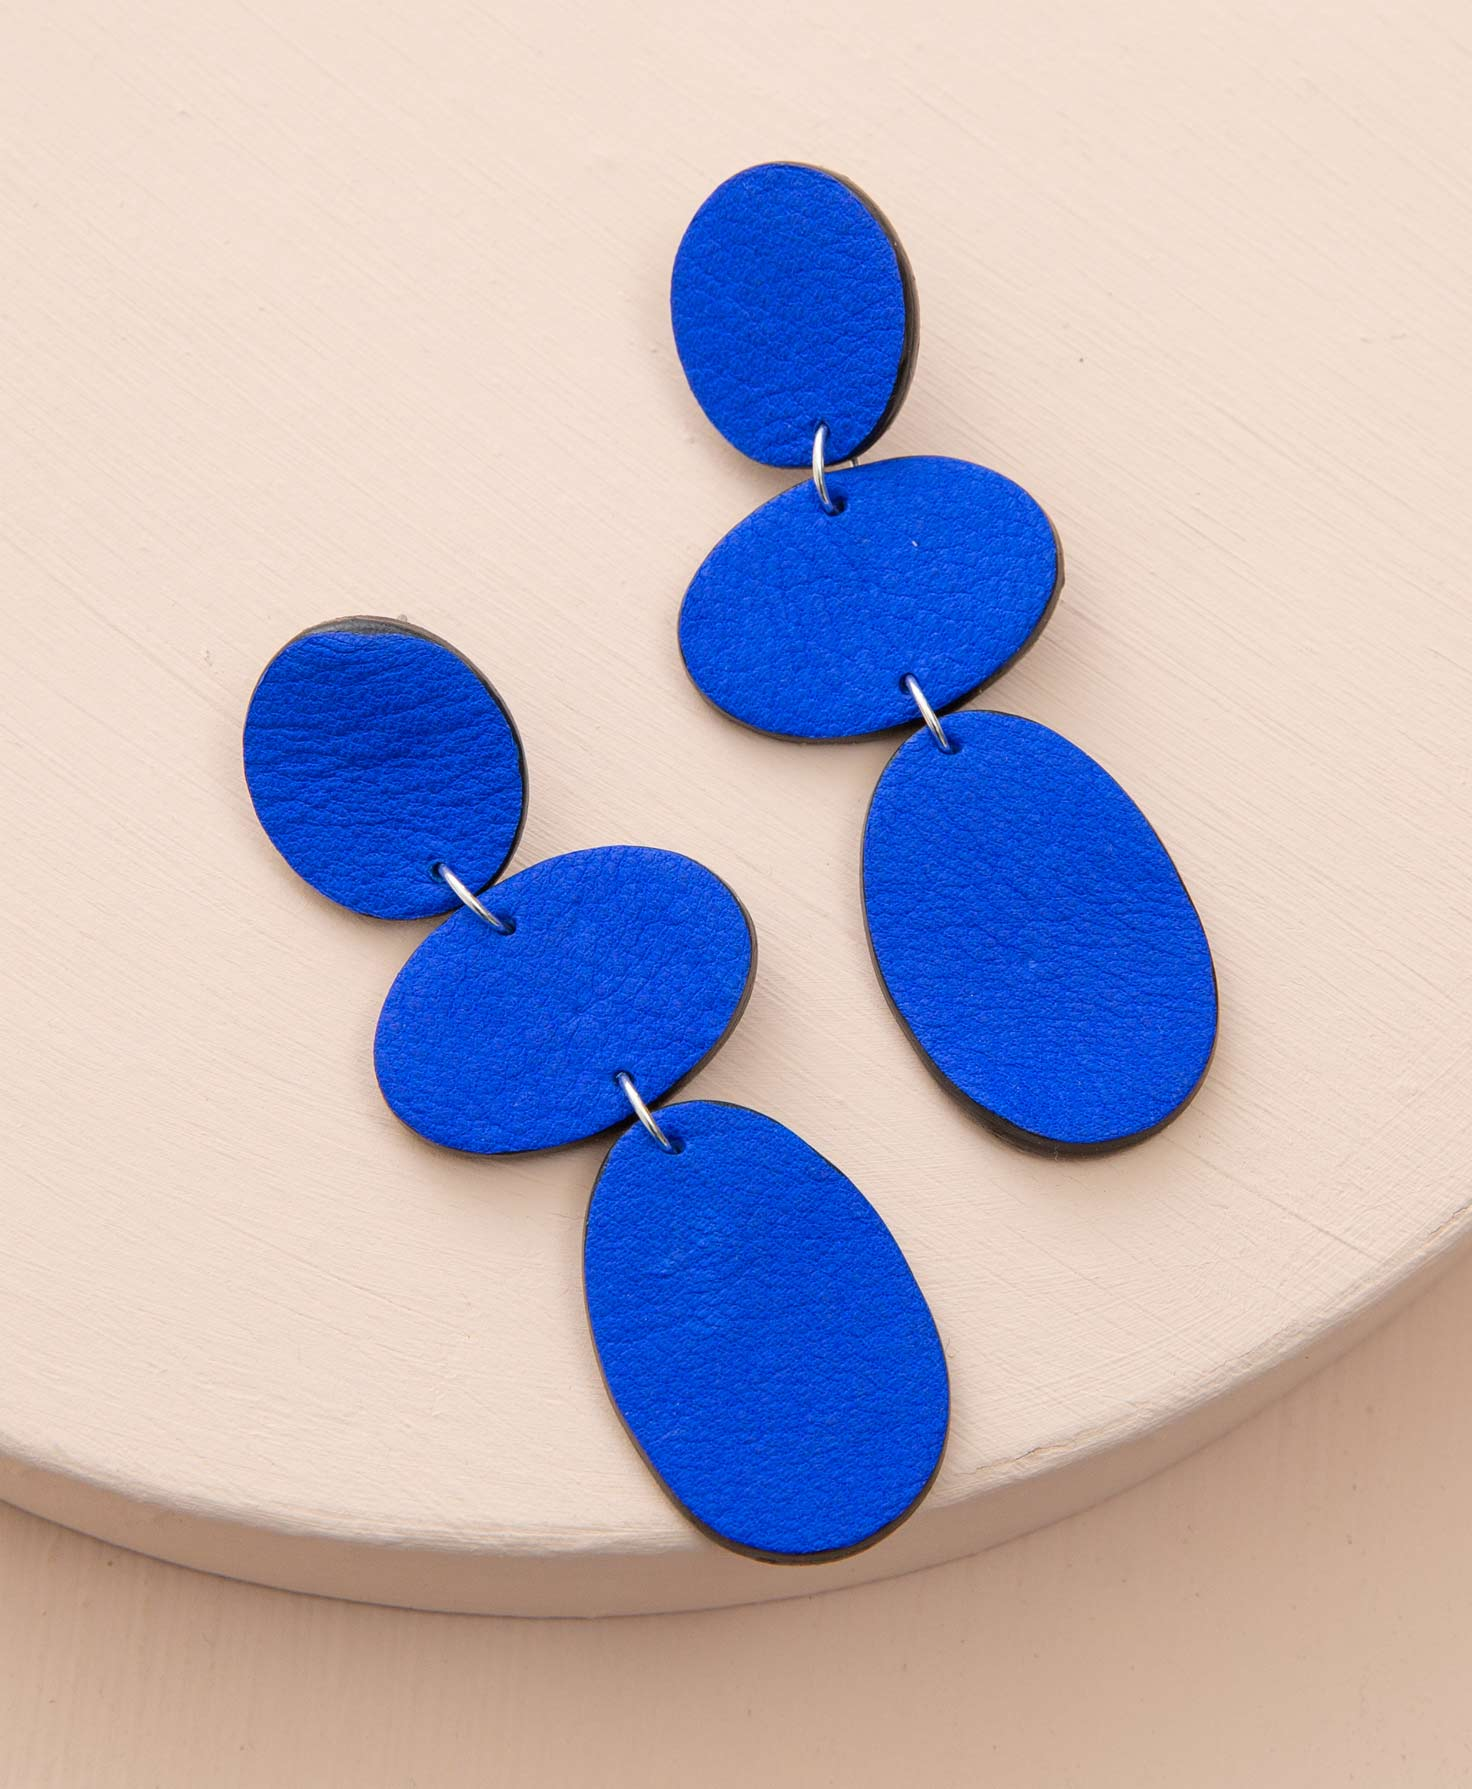 The Lupine Earrings sit on a cream-colored platform. They are post-style earrings made of bright cobalt blue leather. At the top of the earring is a circular leather piece. Connected to this via a silver jump ring is a horizontal oval leather piece. Below this is a vertical oval leather piece.